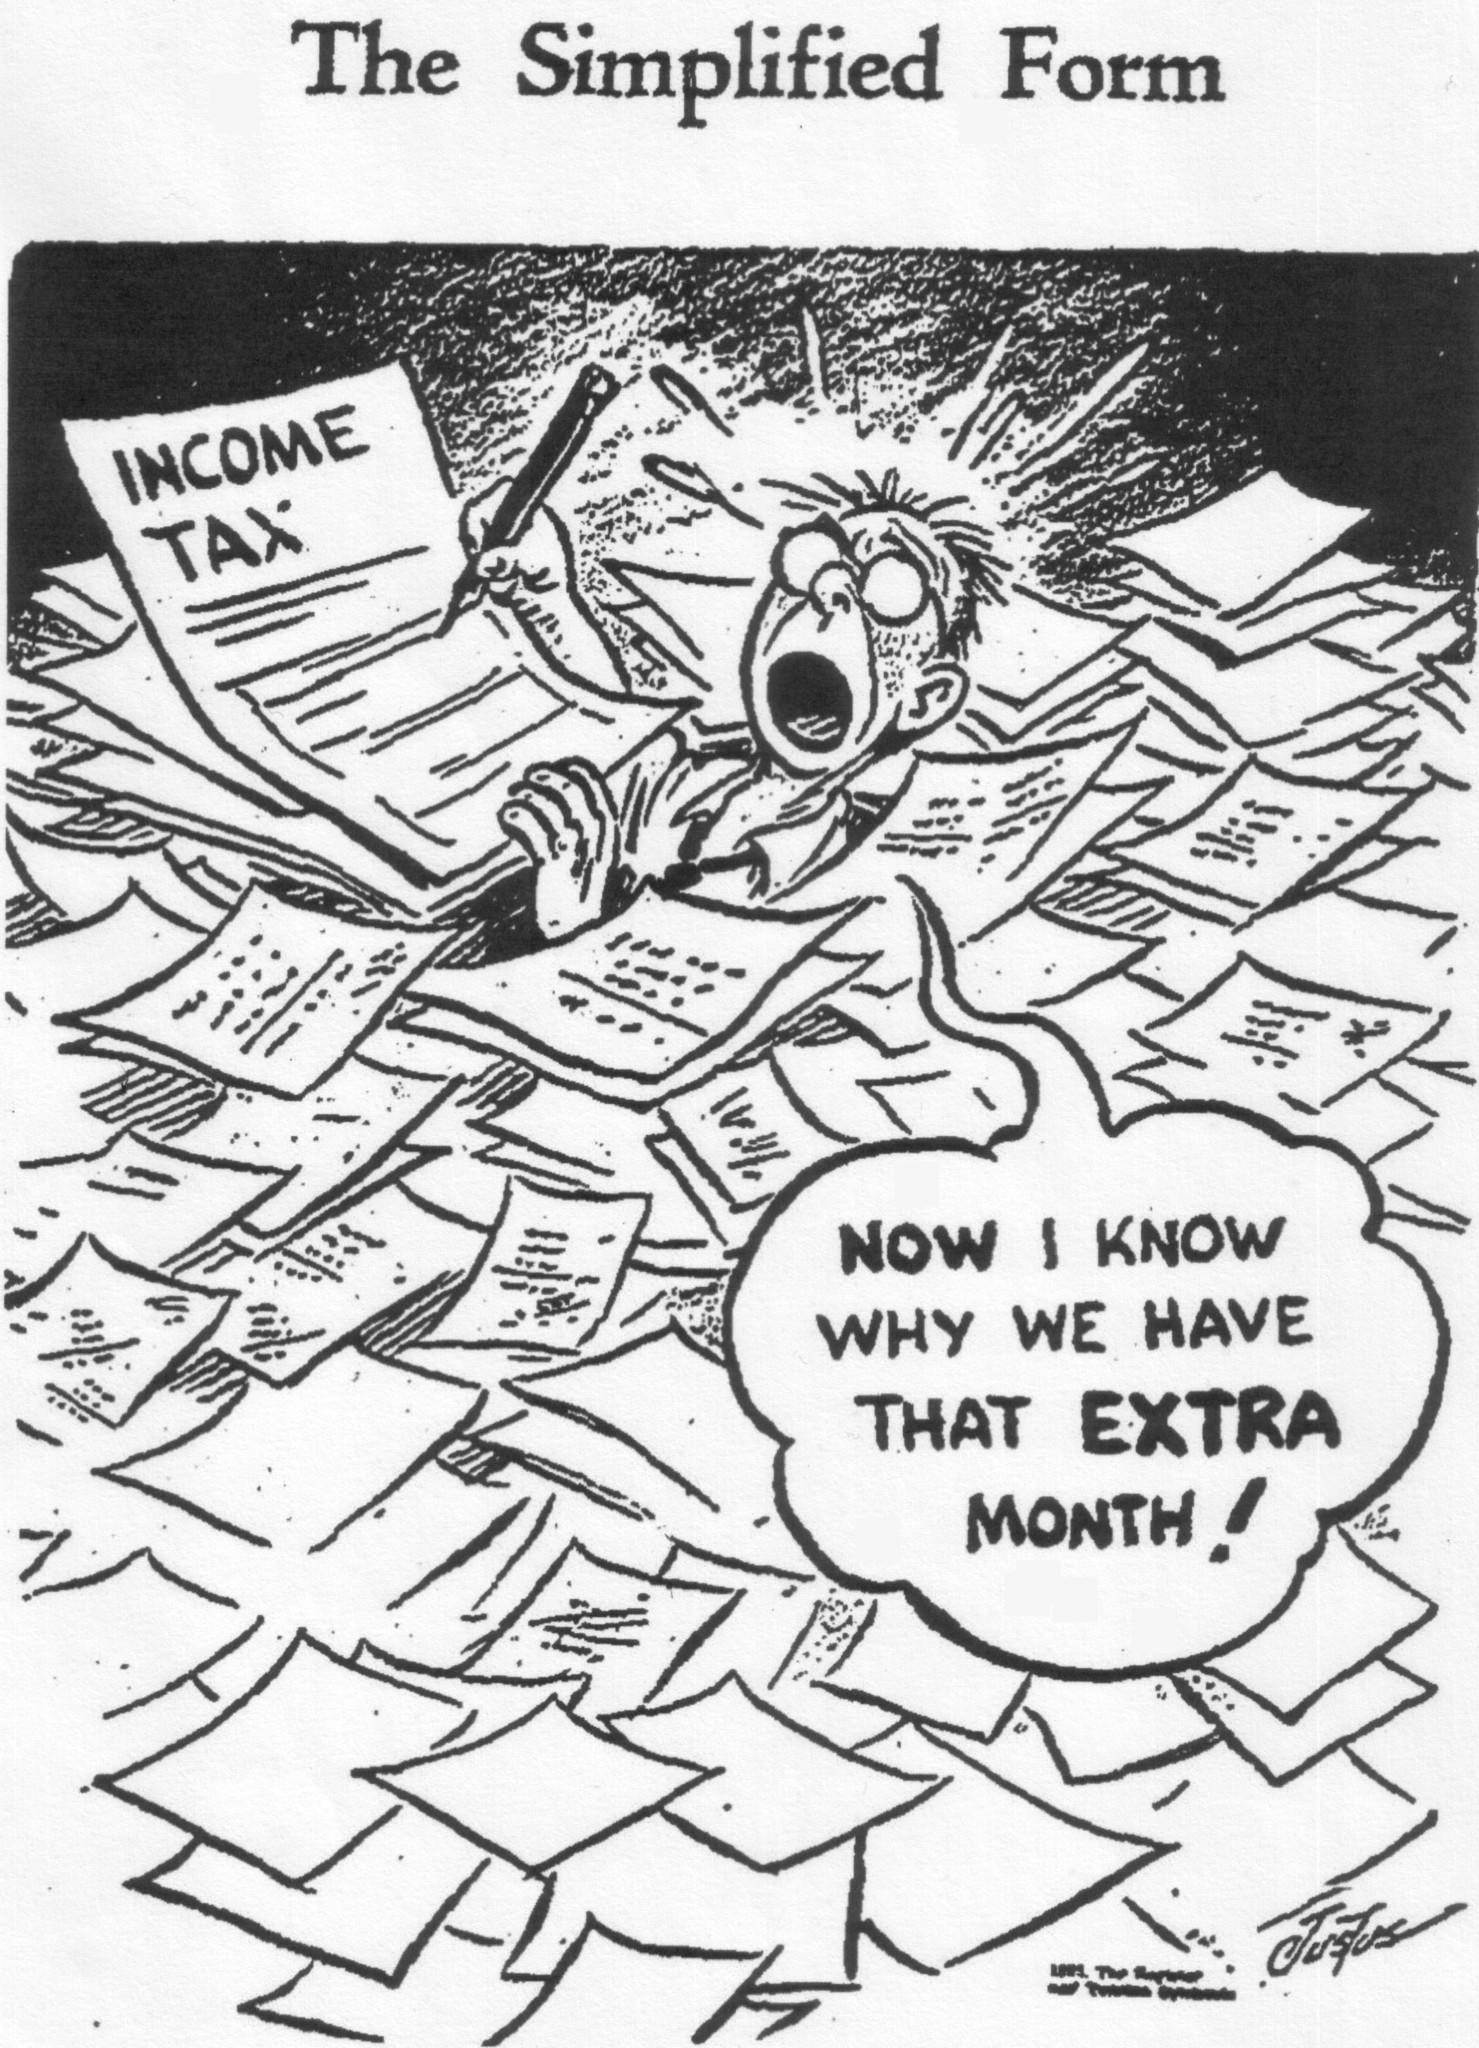 """Starting in 1918, the date for filing the annual federal income tax was set at March 15. """"Beware the Ides of March"""" was the quip for several decades. But in 1955, the Internal Revenue Service, claiming it wanted to """"spread out the peak workload,"""" switched the date to April 15, where it is now. This cartoon depicts a hapless taxpayer struggling to get through a mountain of tax-related paperwork despite the brand-new extension of the deadline by a month."""